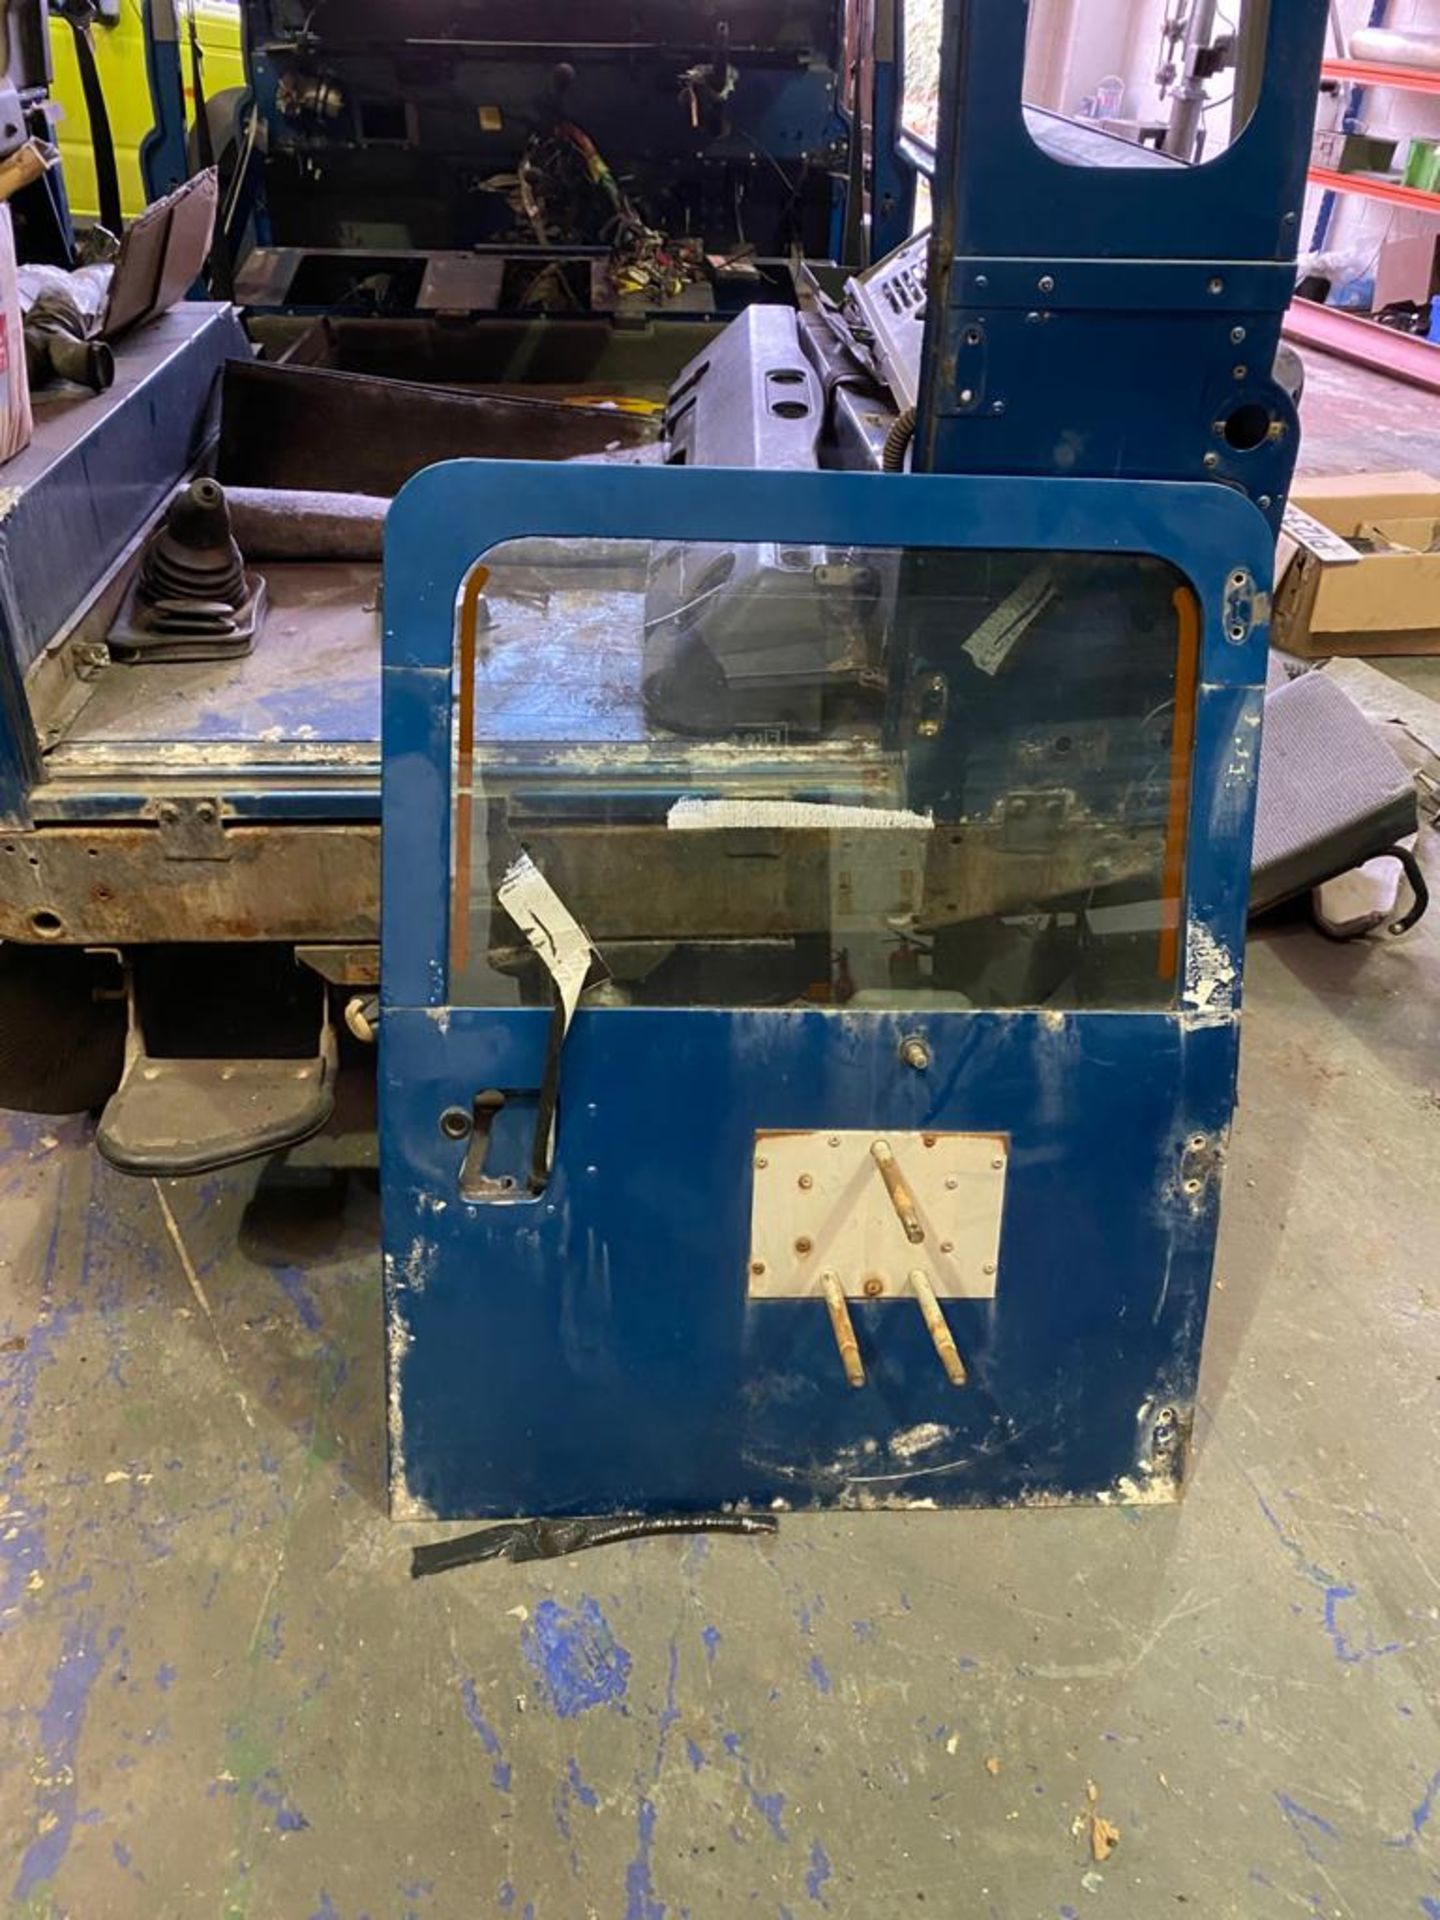 Land Rover 110 County, 300 TDI Engine Appears Mostly Complete - No Bumper, Bonnet, Glass etc As - Image 14 of 26